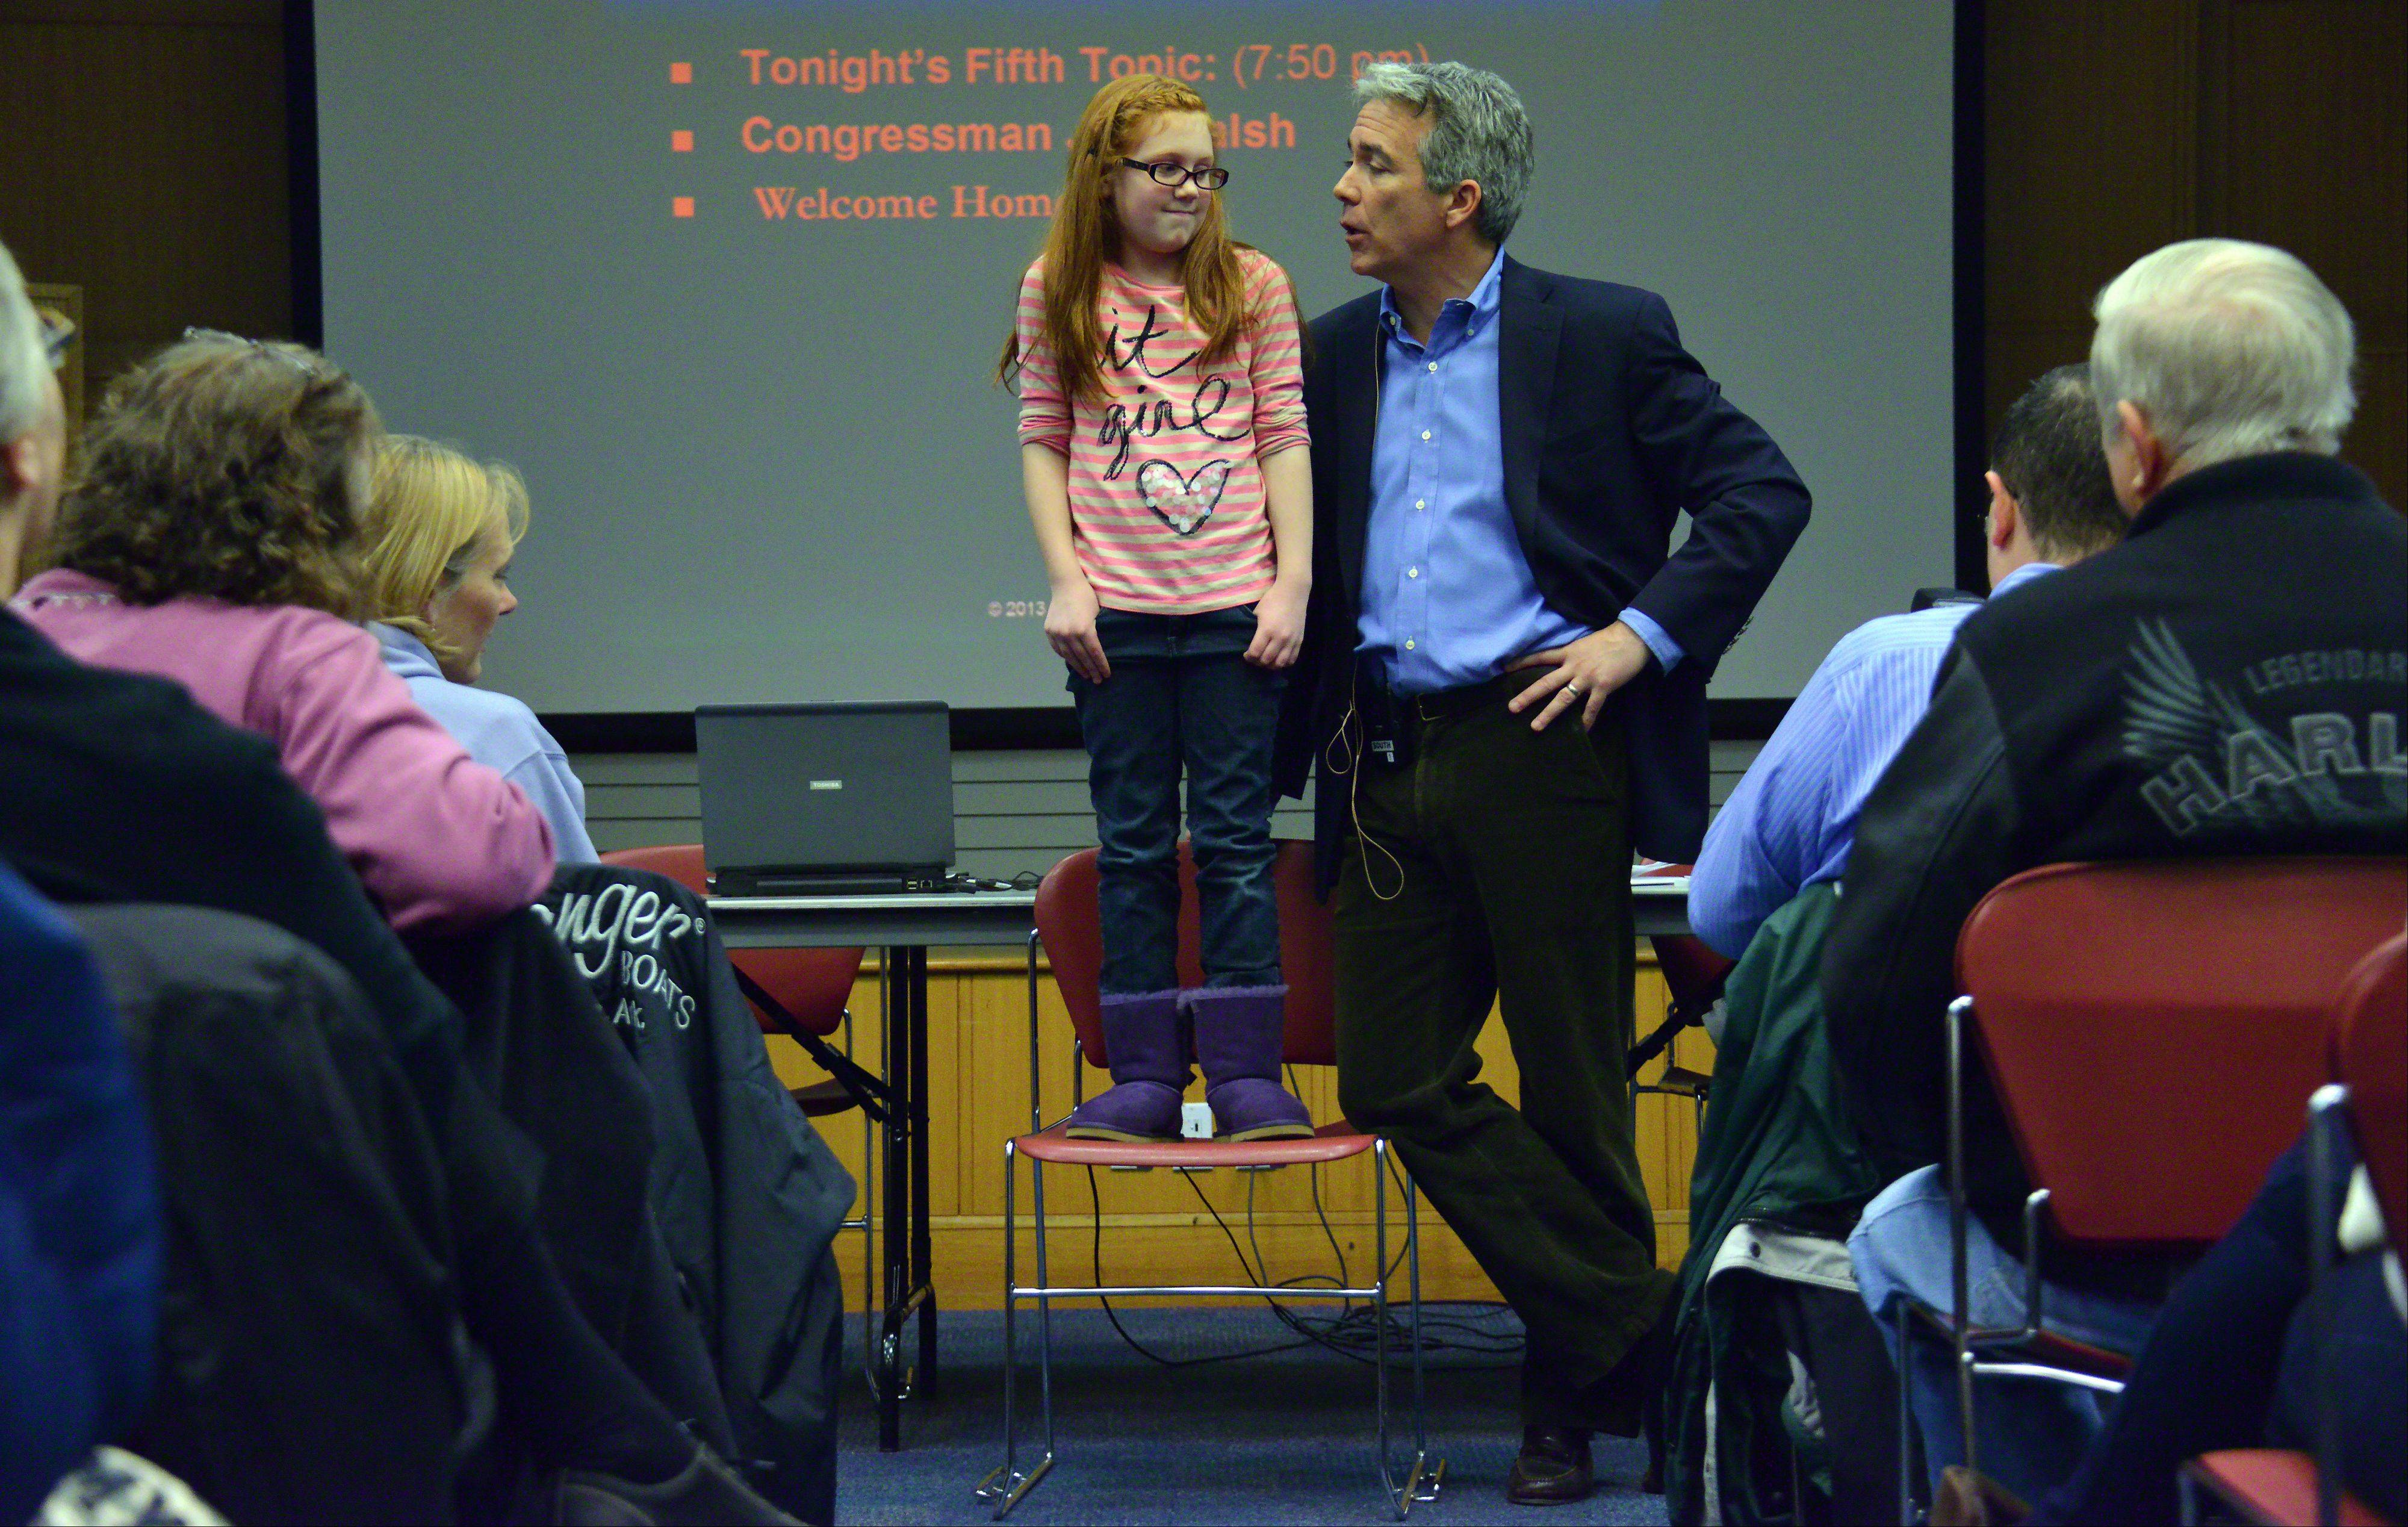 Former U.S. Rep. Joe Walsh made his first public appearance as an ex-congressman at the Arlington Heights Memorial Library on Thursday night and spoke to over 100 people. Walsh talked about the country's future with Isabelle Beaman, 9, of Wheaton, next to him.